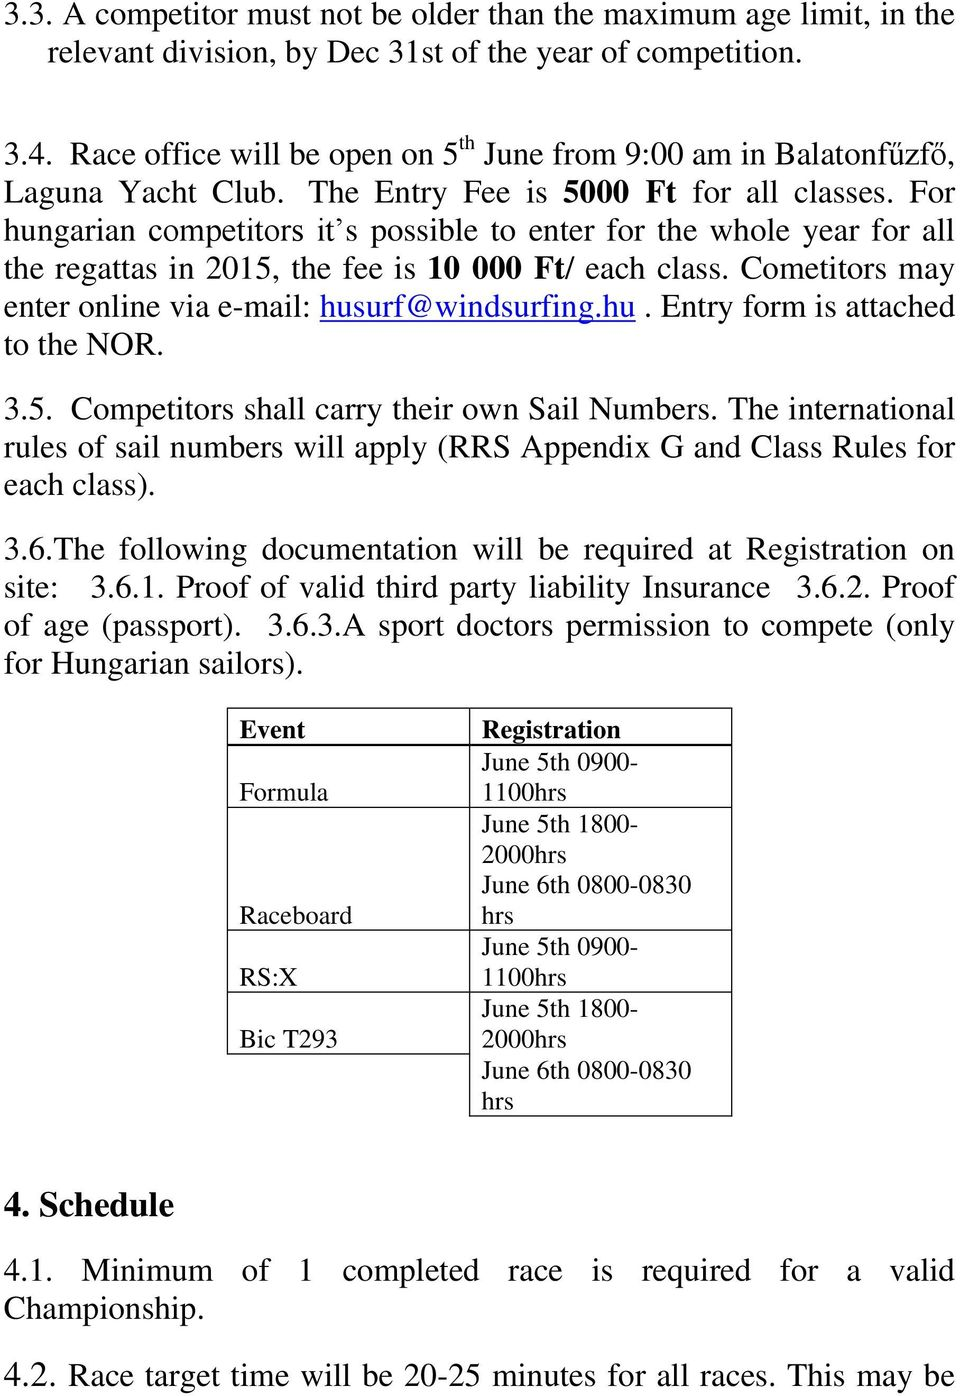 For hungarian competitors it s possible to enter for the whole year for all the regattas in 2015, the fee is 10 000 Ft/ each class. Cometitors may enter online via e-mail: husurf@windsurfing.hu. Entry form is attached to the NOR.